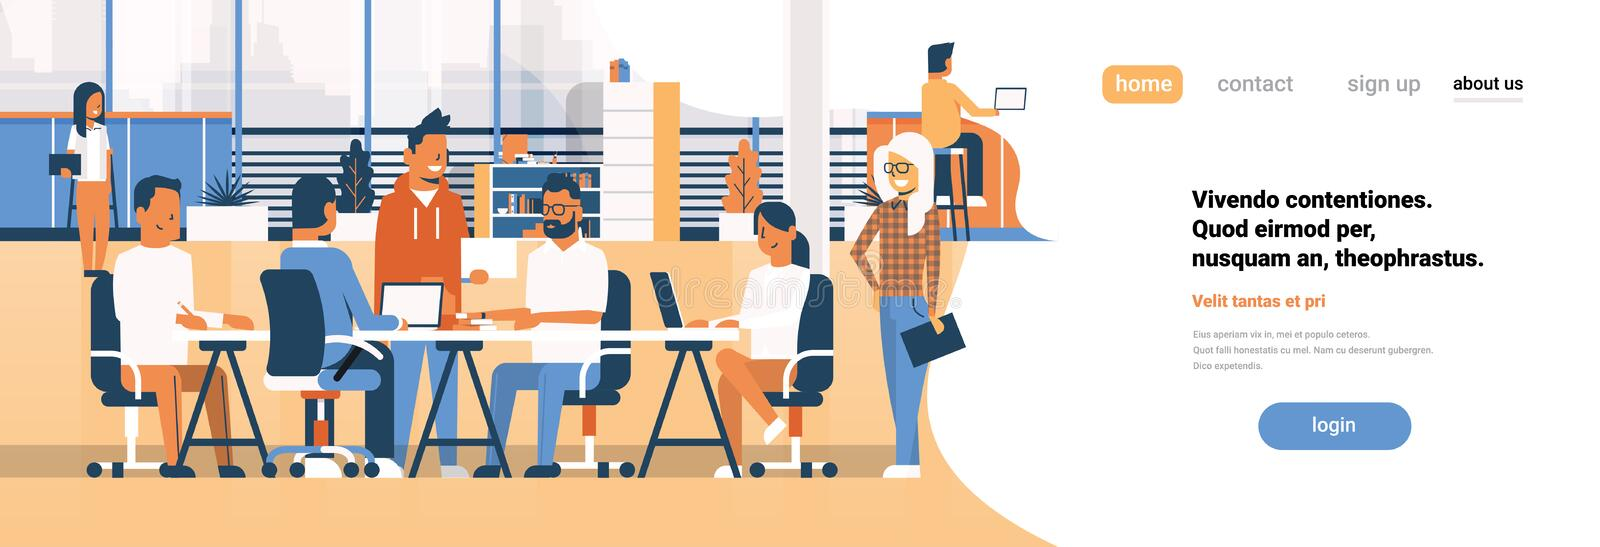 Business team brainstorming meeting group businesspeople sitting together office discussing flat banner copy space. Vector illustration stock illustration